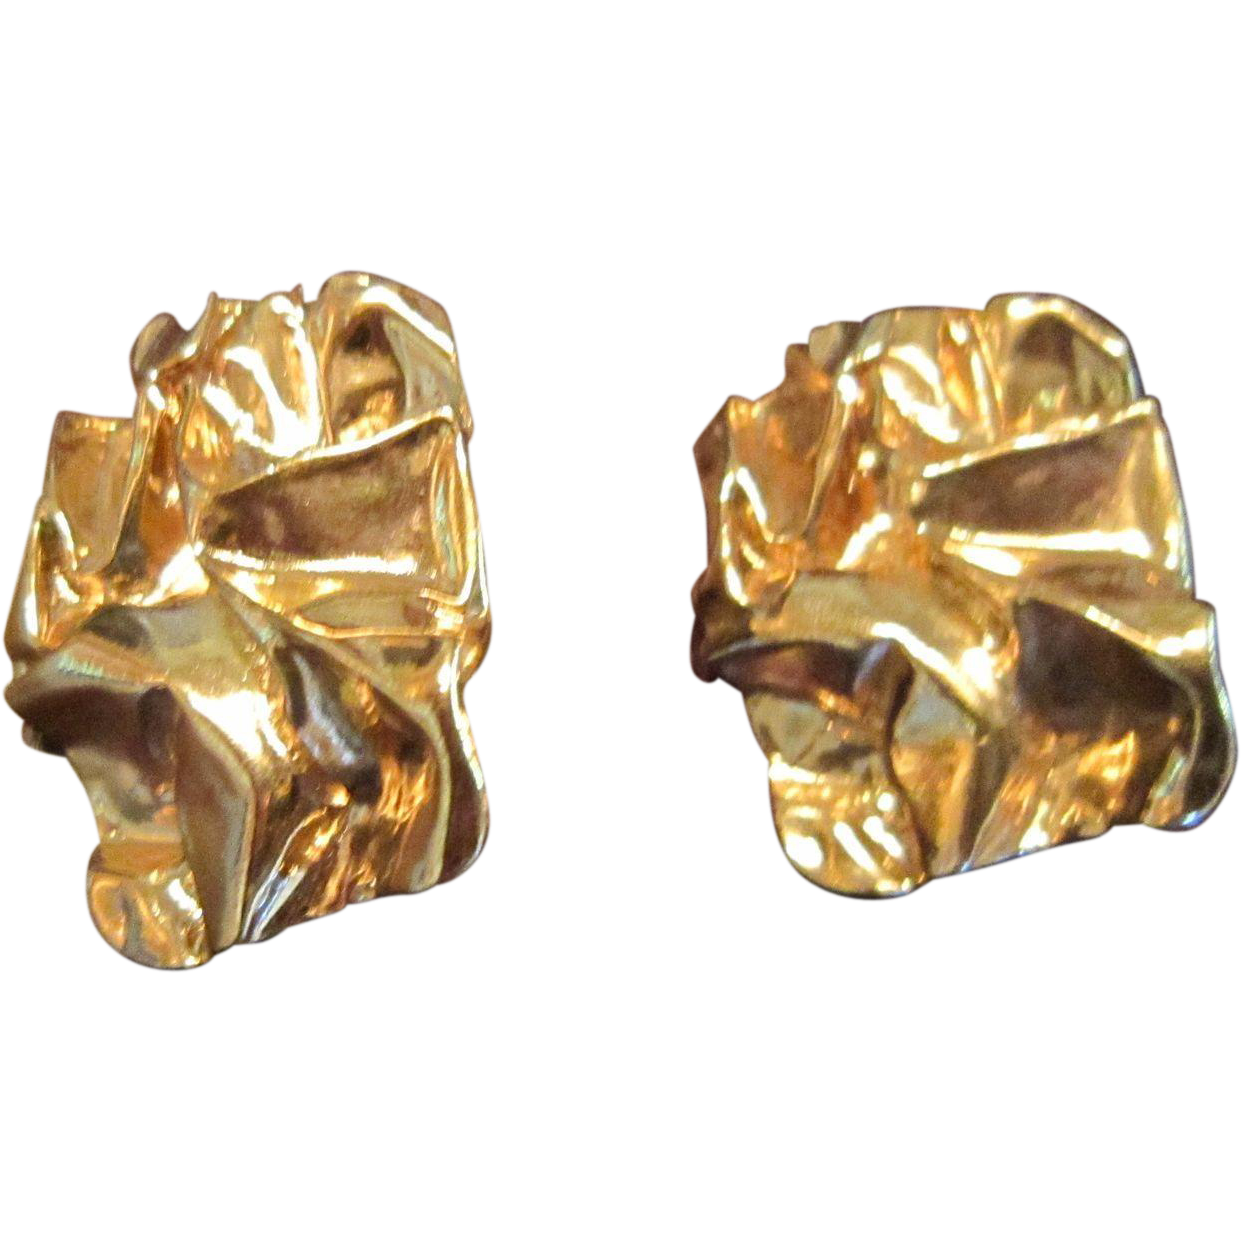 Ciner Melting Gold Plated Earrings - Brutalism Style